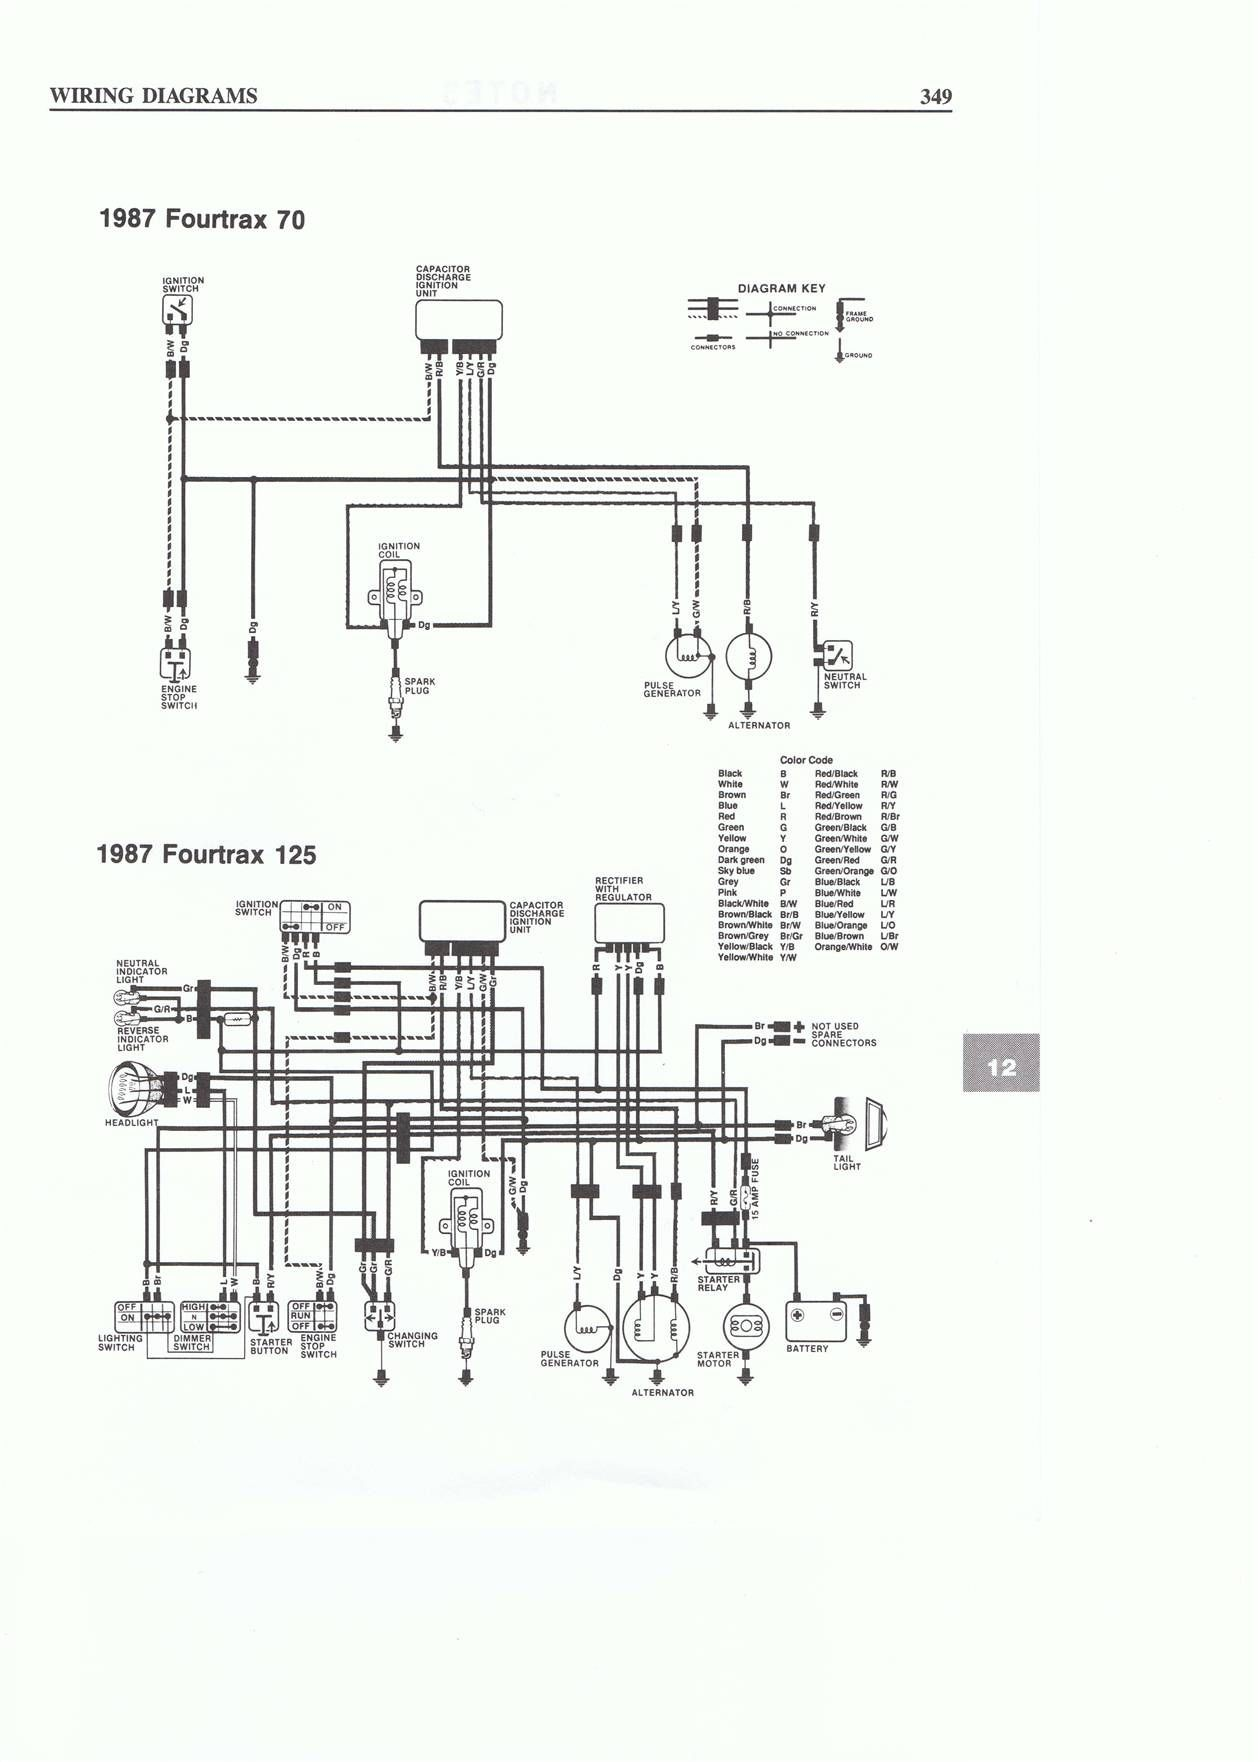 Scooter Engine Diagram Pin by Marthie Schonstein On Diy and Crafts Pinterest Of Scooter Engine Diagram